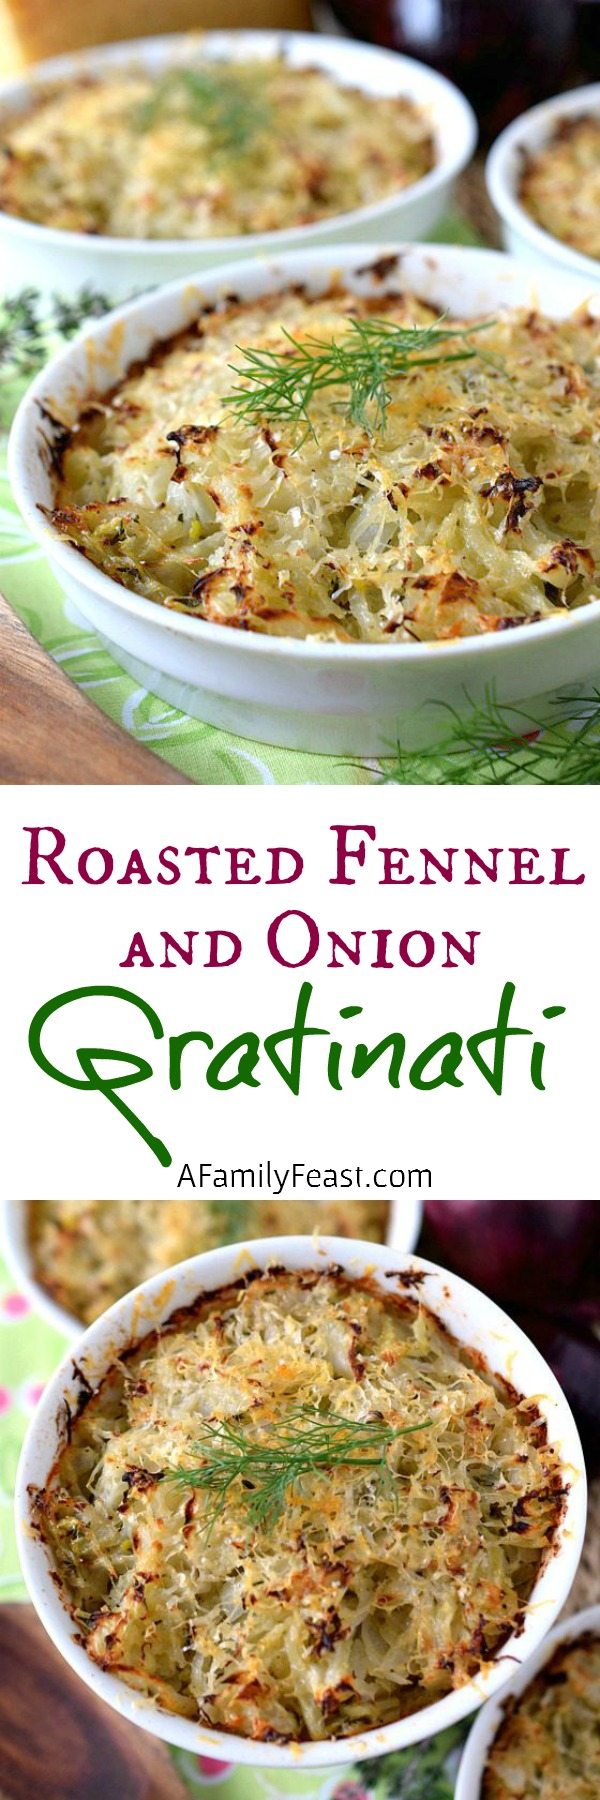 Roasted Fennel and Onion Gratinati - Cheesy and delicious! This Tuscan recipe is fantastic served with just about any meal!